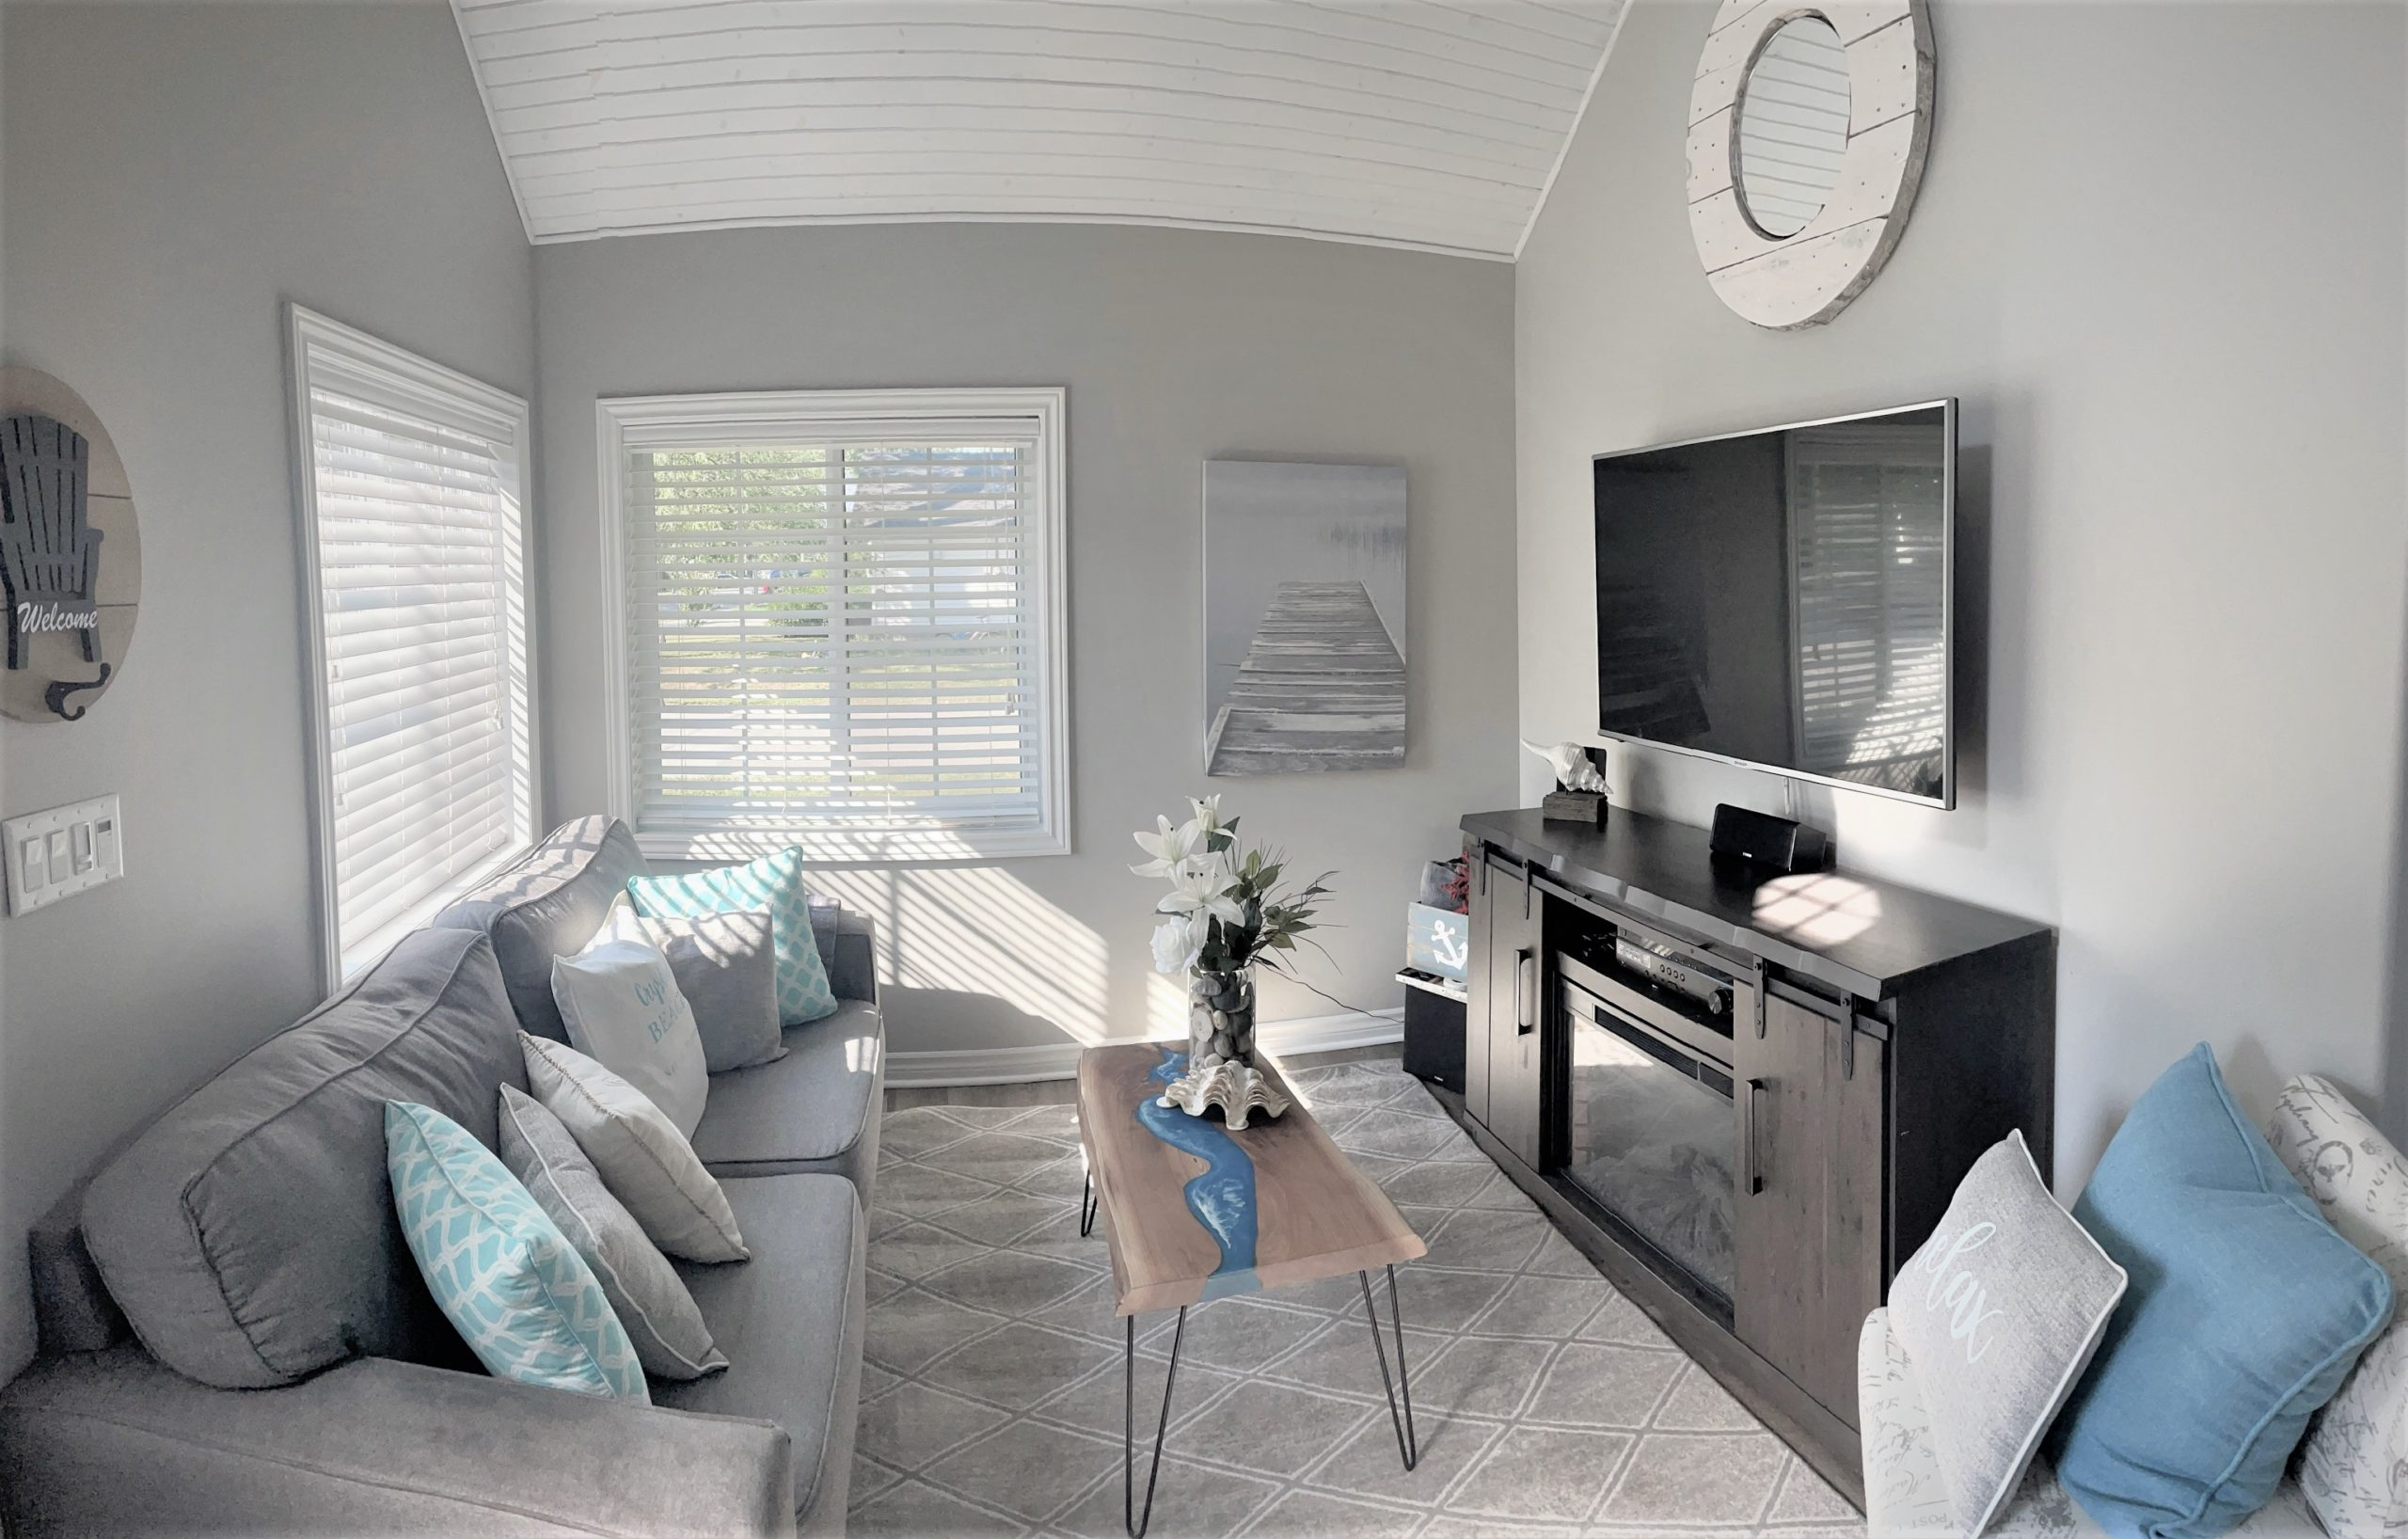 Home Away From Home-Living Room2-Holiday Homes Property Management-Crystal Beach ON